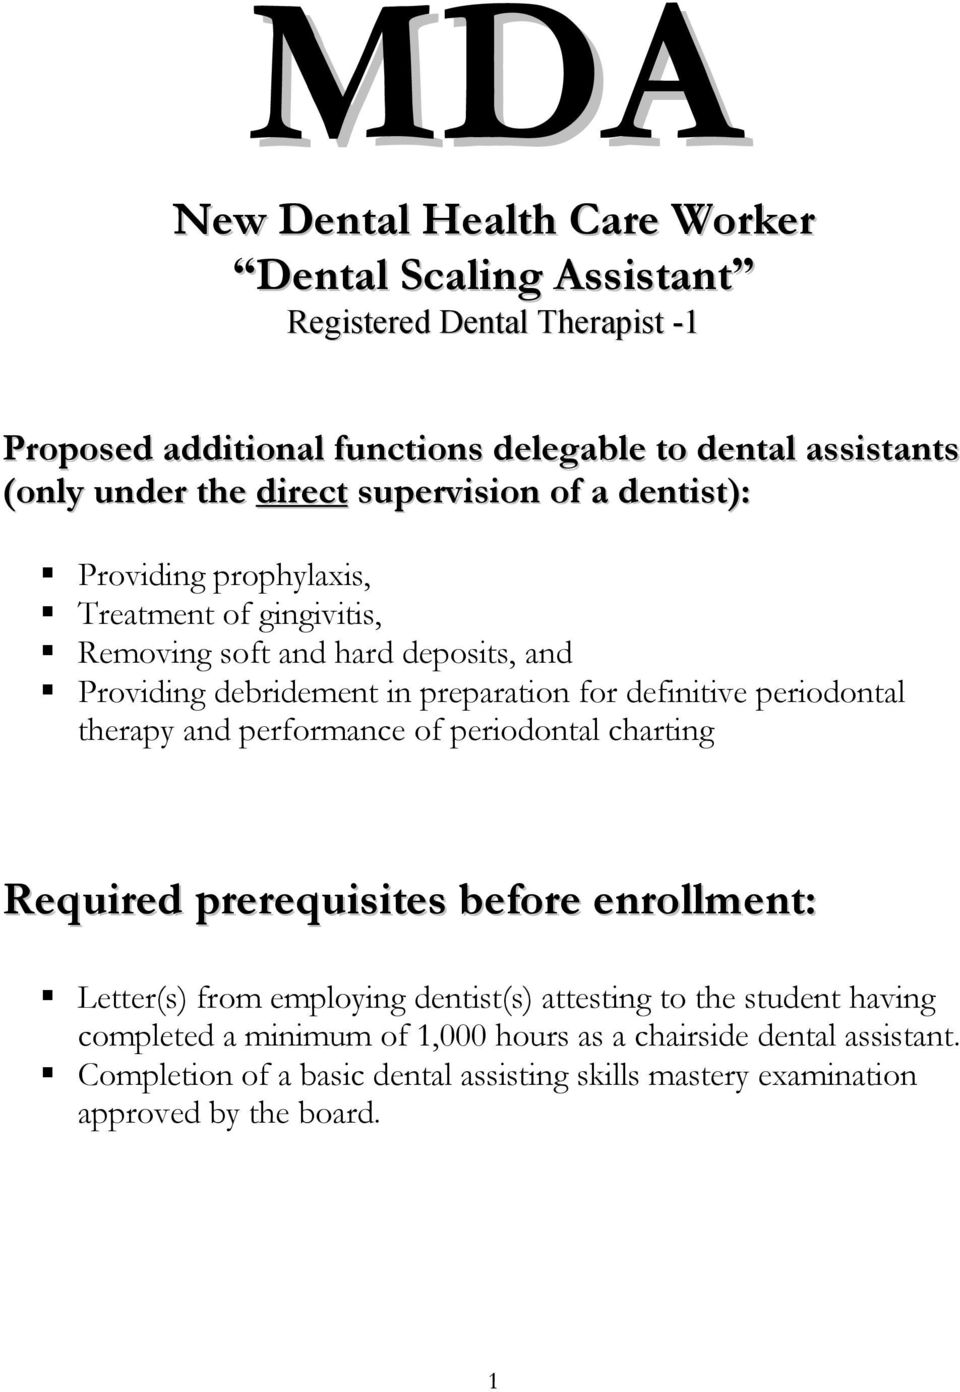 definitive periodontal therapy and performance of periodontal charting Required prerequisites before enrollment: Letter(s) from employing dentist(s) attesting to the